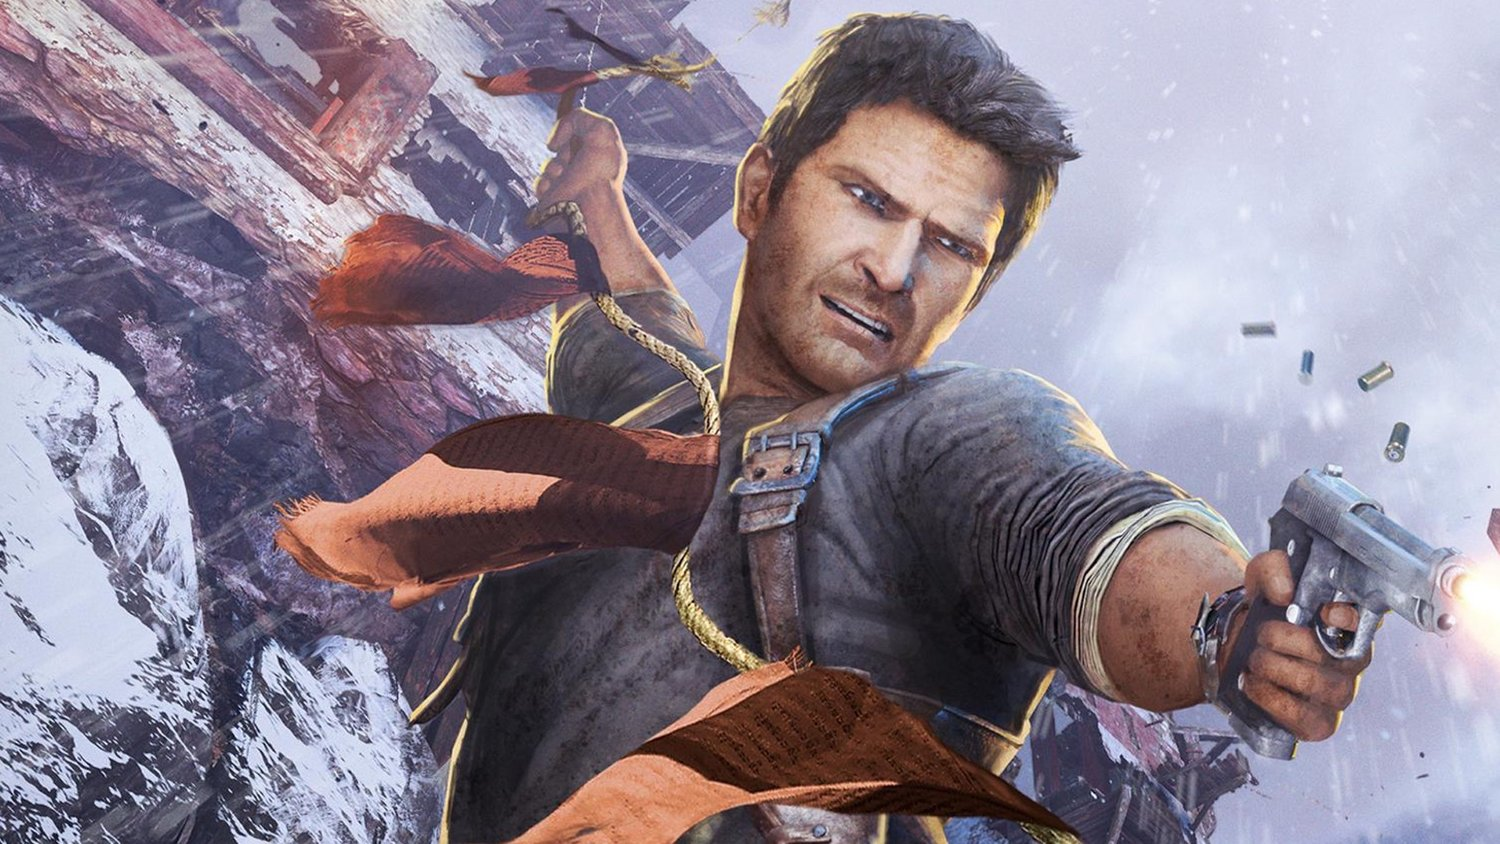 Le réalisateur Travis Knight devrait commencer à tourner le film UNCHARTED de Sony en 2020 – Newstrotteur director travis knight will reportedly start shooting sonys uncharted movie in 2020 social